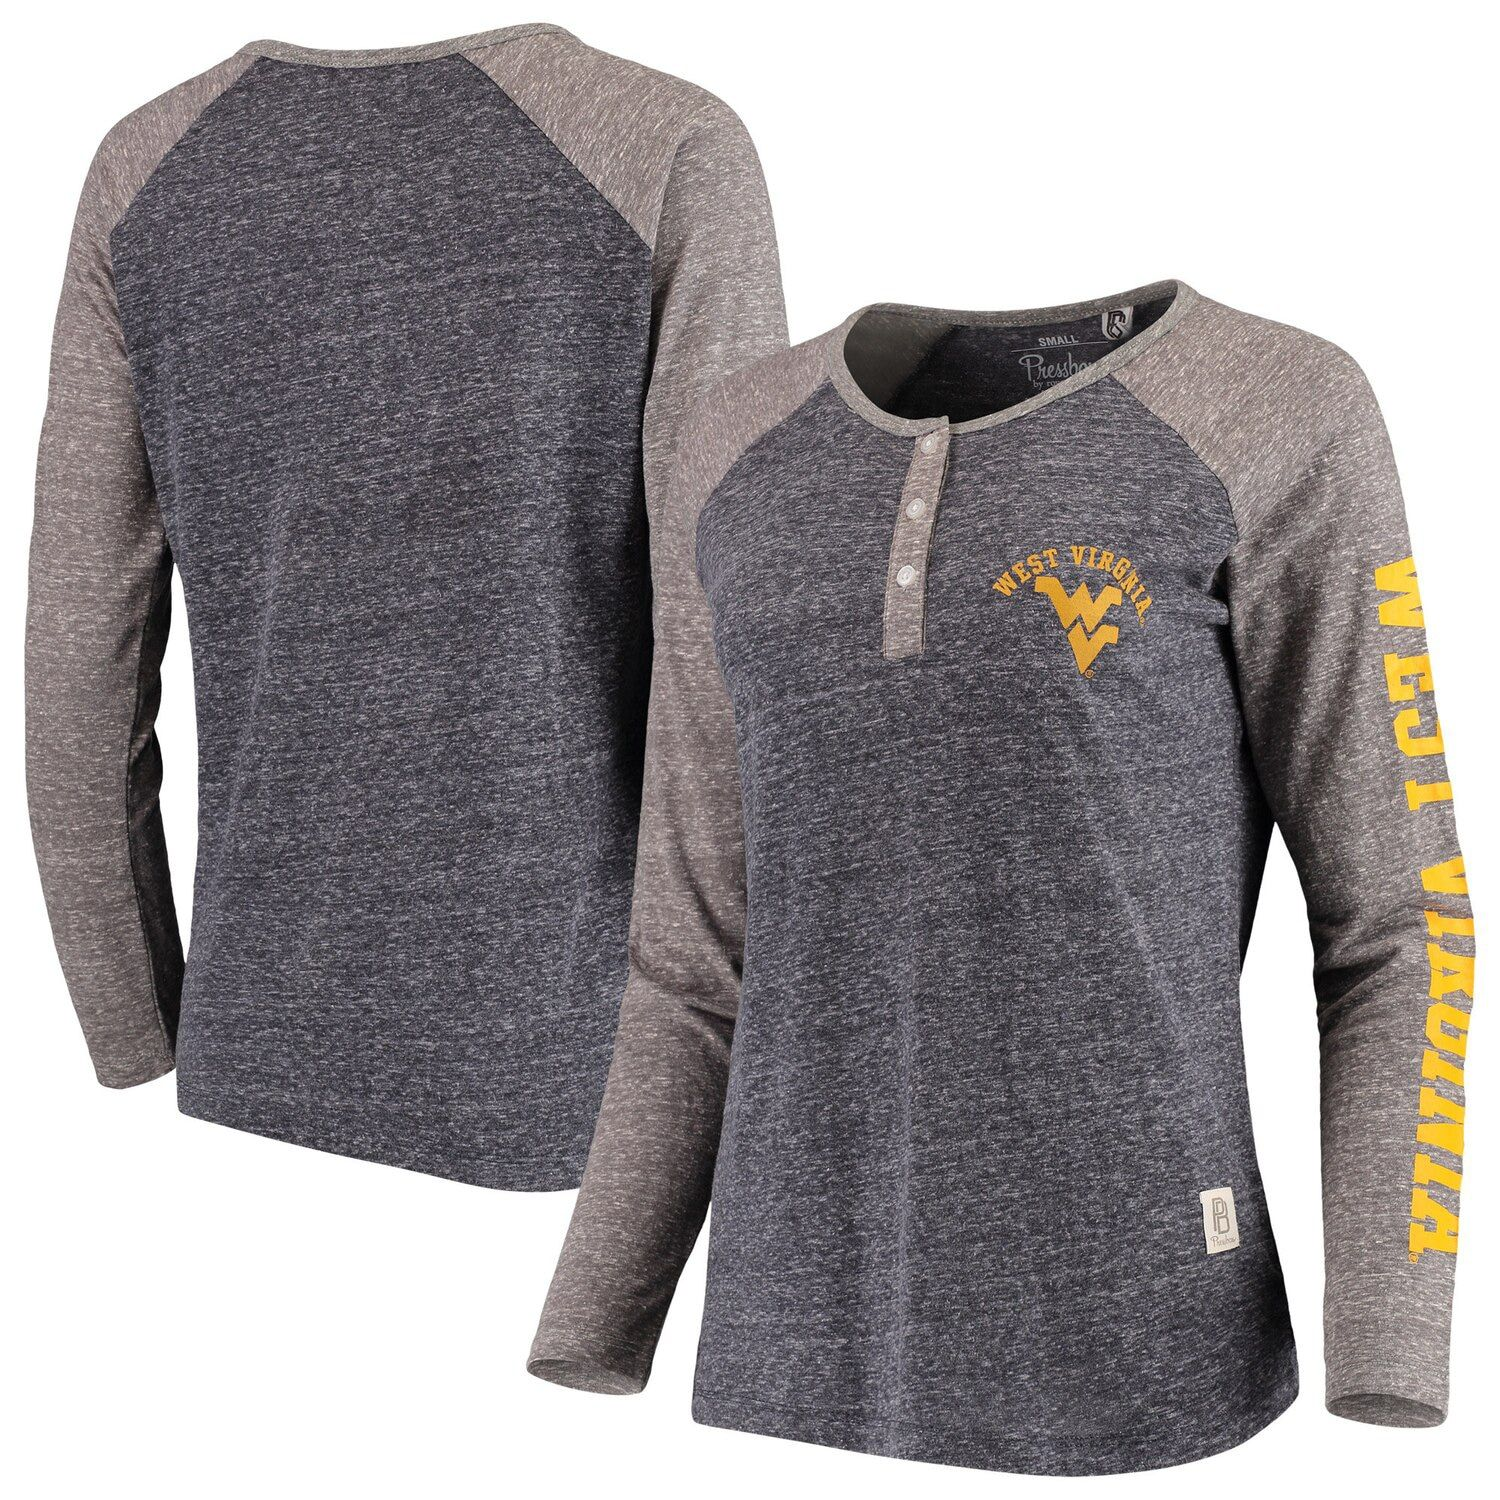 Women's Pressbox Navy West Virginia Mountaineers Avery Knobi Raglan Henley Tri-Blend Long Sleeve T-Shirt #westvirginia